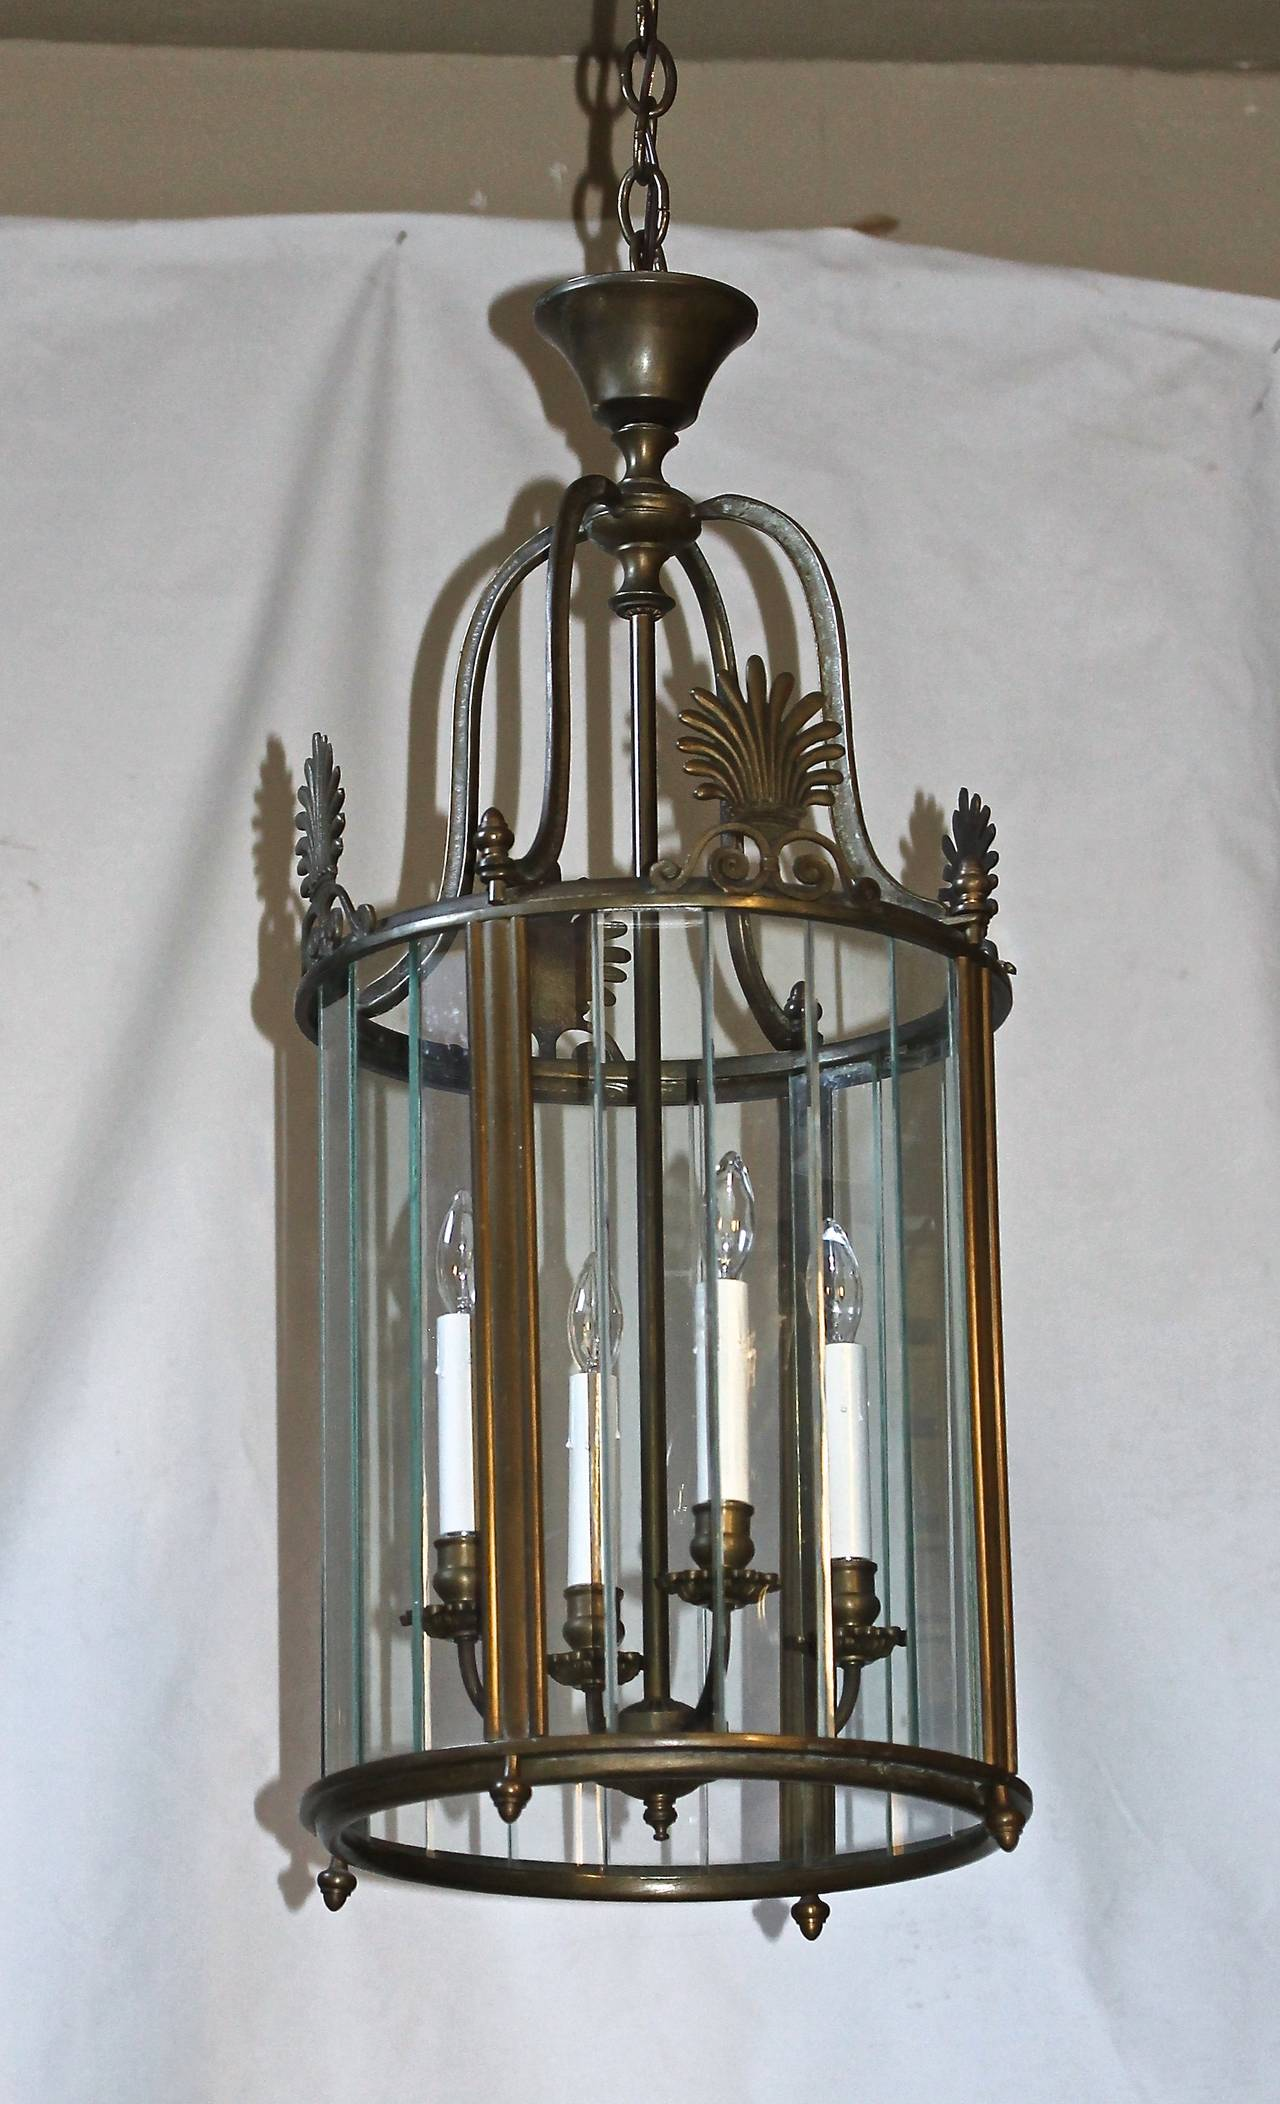 15 Best Collection Of Entrance Hall Pendant Lights: Large Italian Neoclassic Bronze Hall Lantern Pendant Light